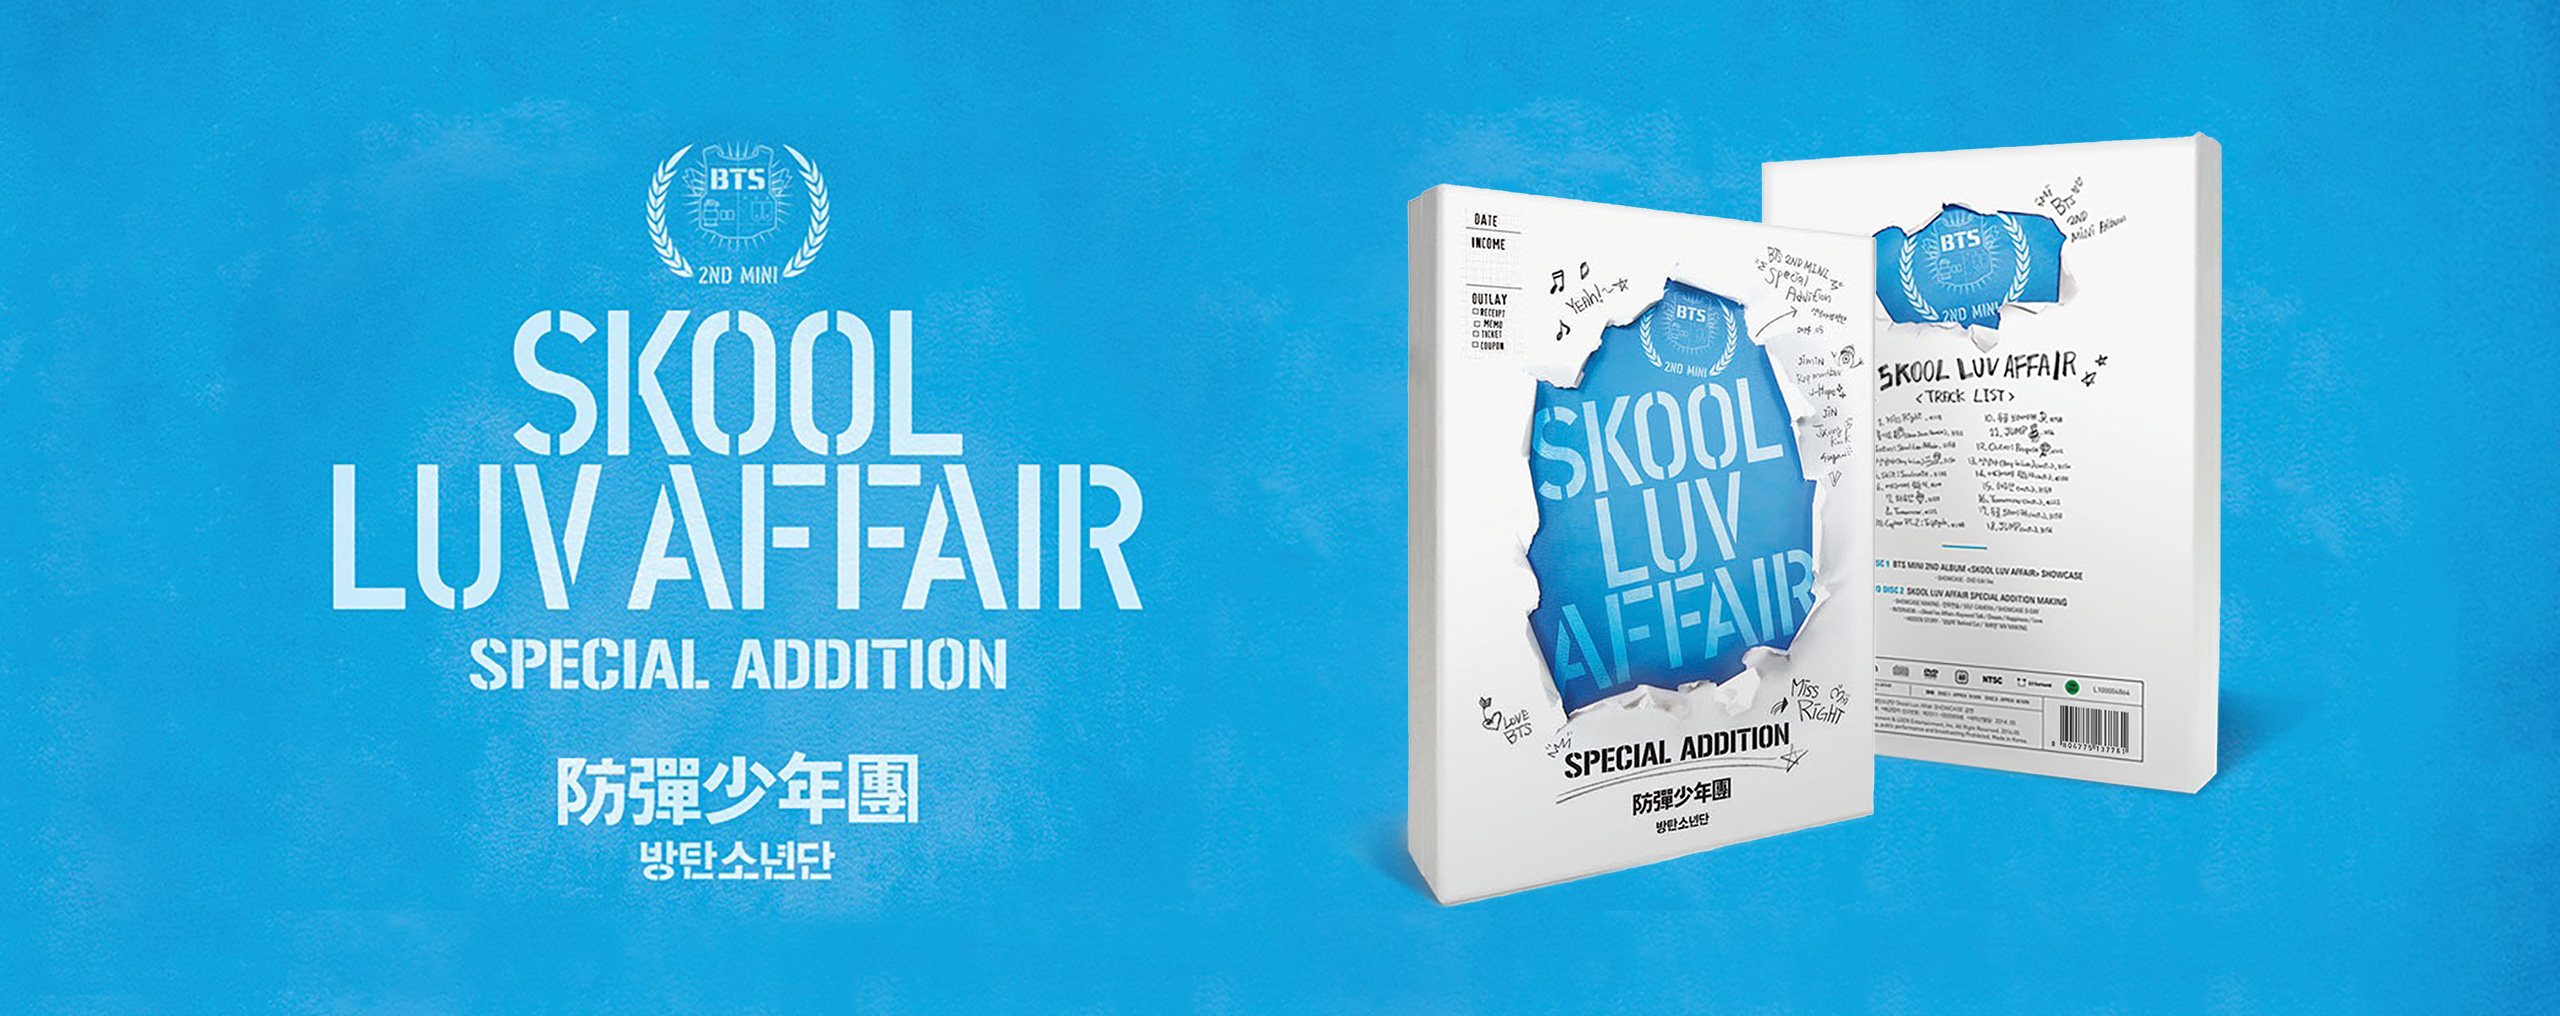 Skool Luv Affair SPECIAL ADDITION_FC_2560_1016